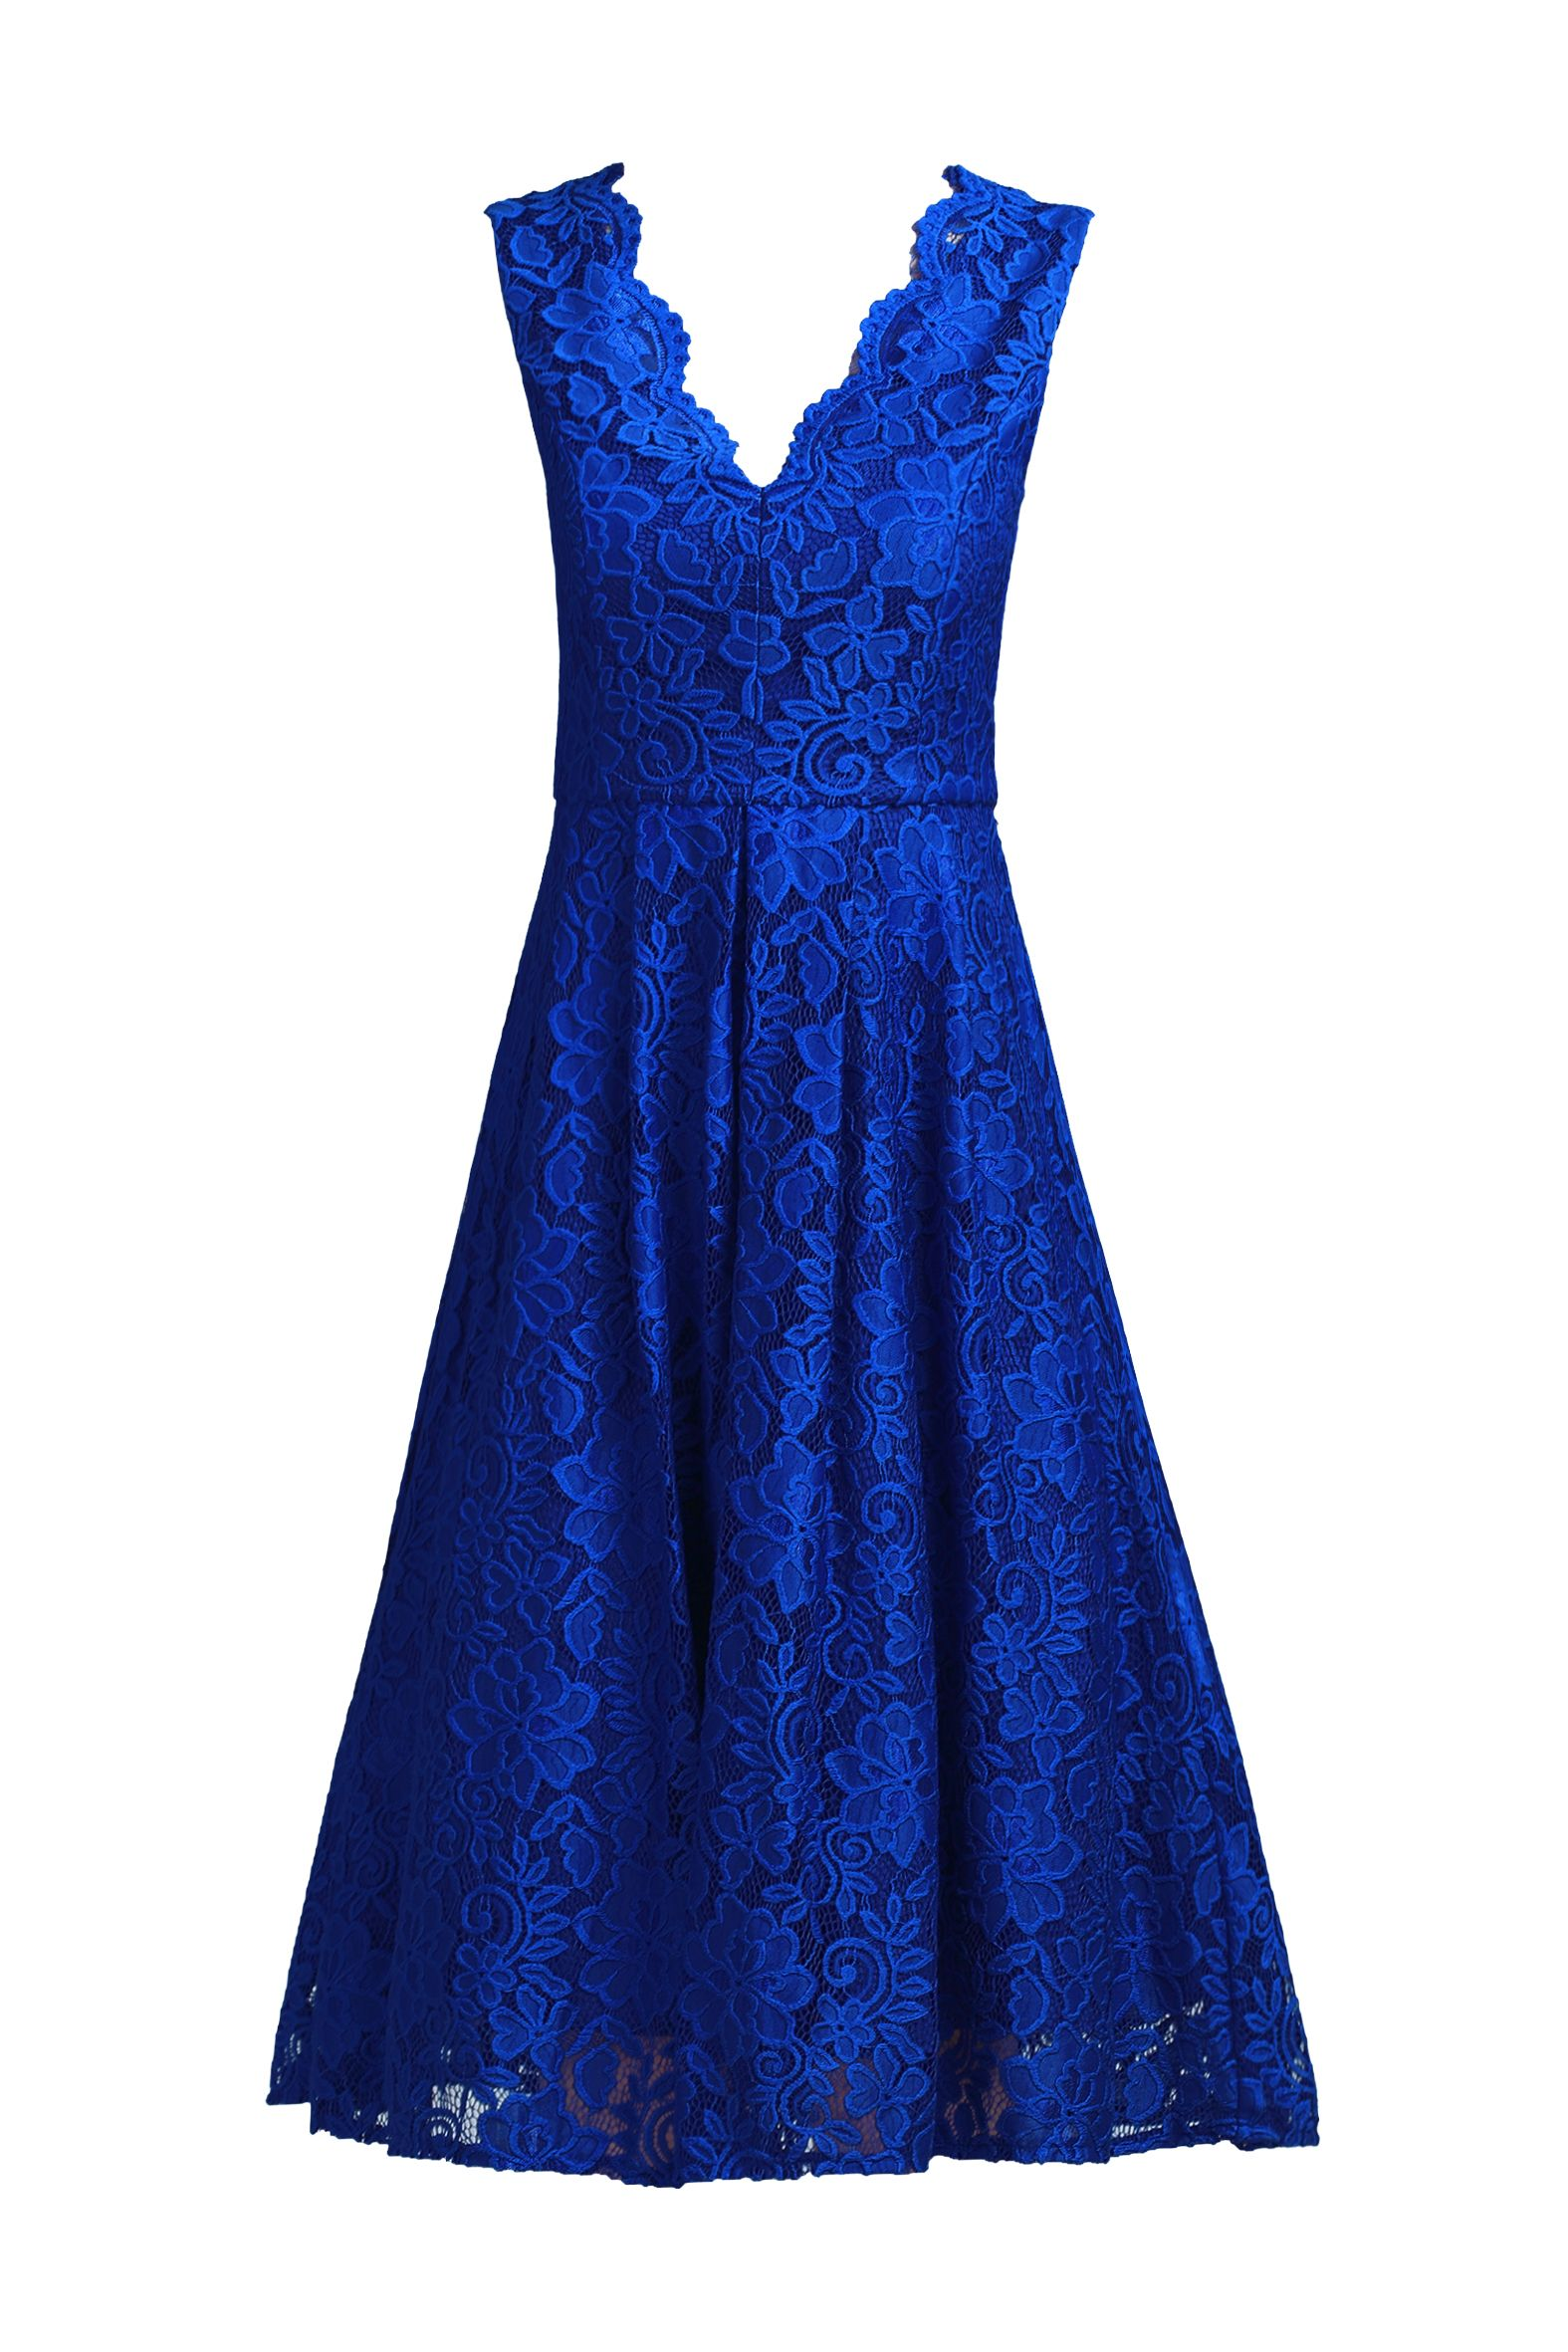 Jolie Moi Scalloped V Neck Lace Dress, Royal Blue